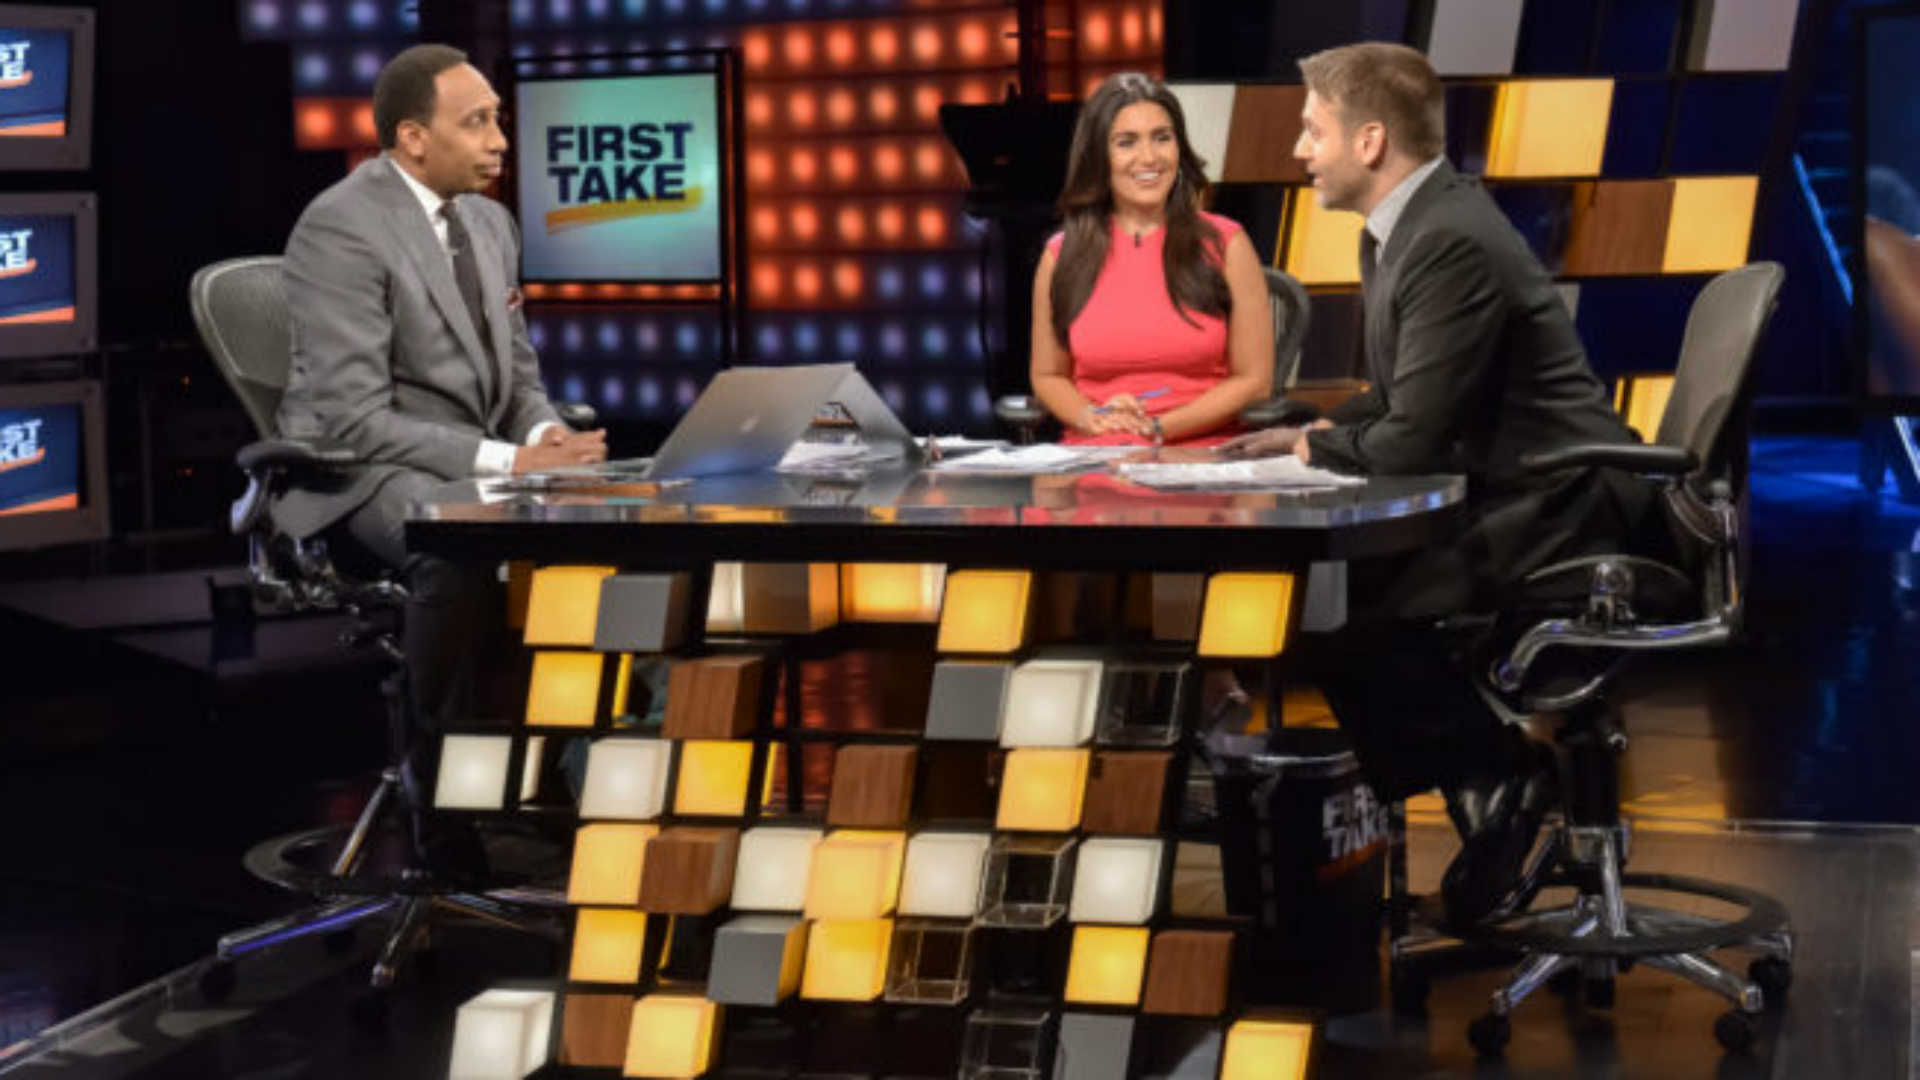 'First Take' moving to ESPN from ESPN2 in January